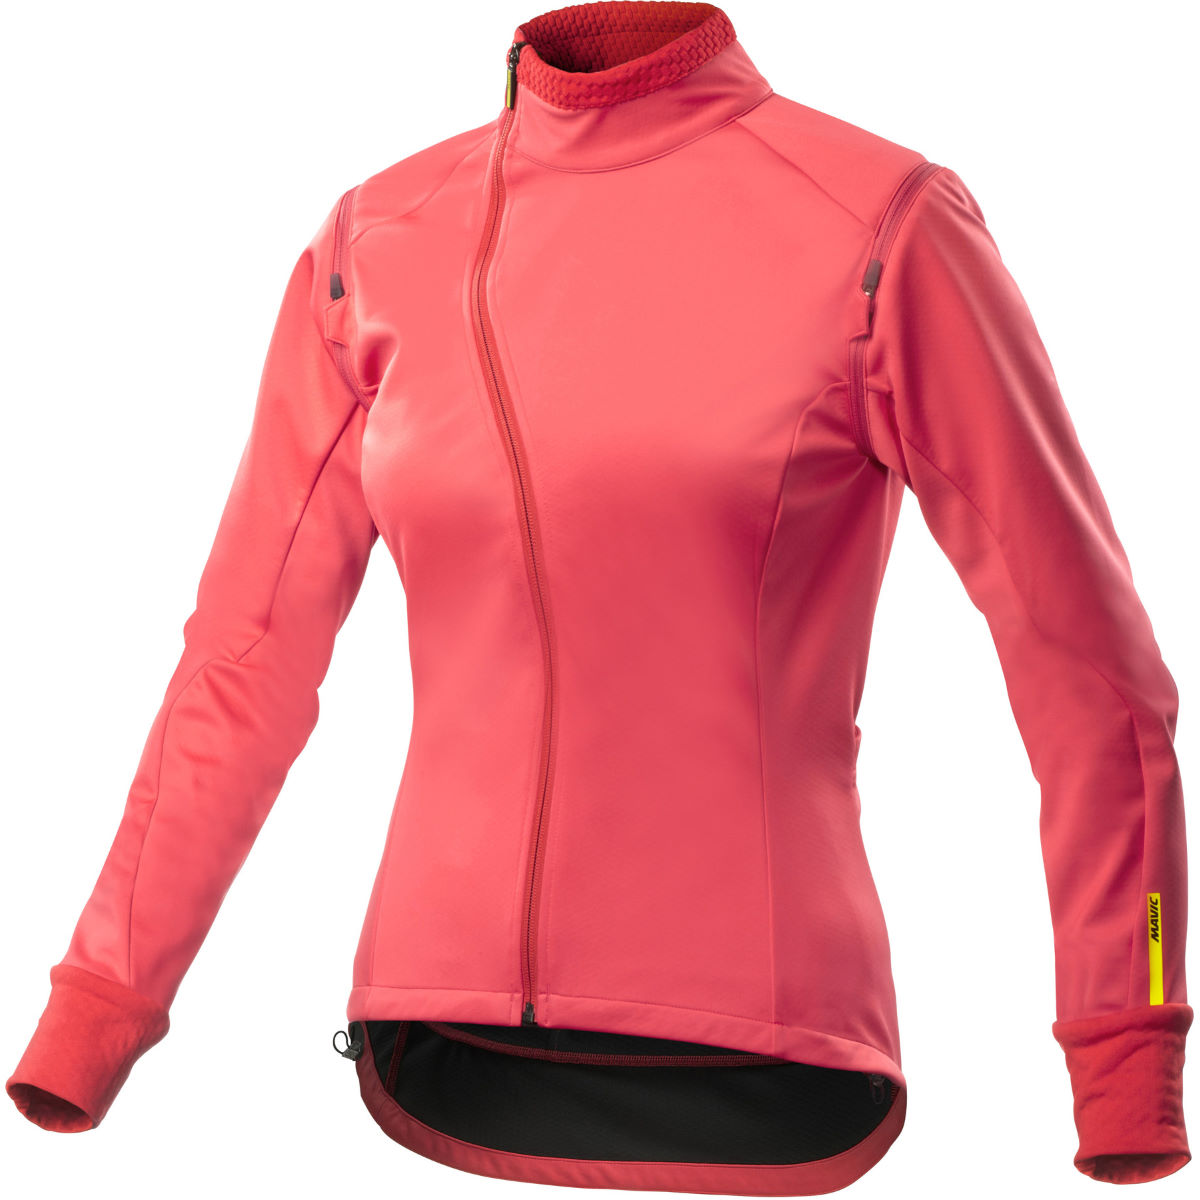 Veste Femme Mavic Aksium (convertible) - XS Papaya Coupe-vents vélo